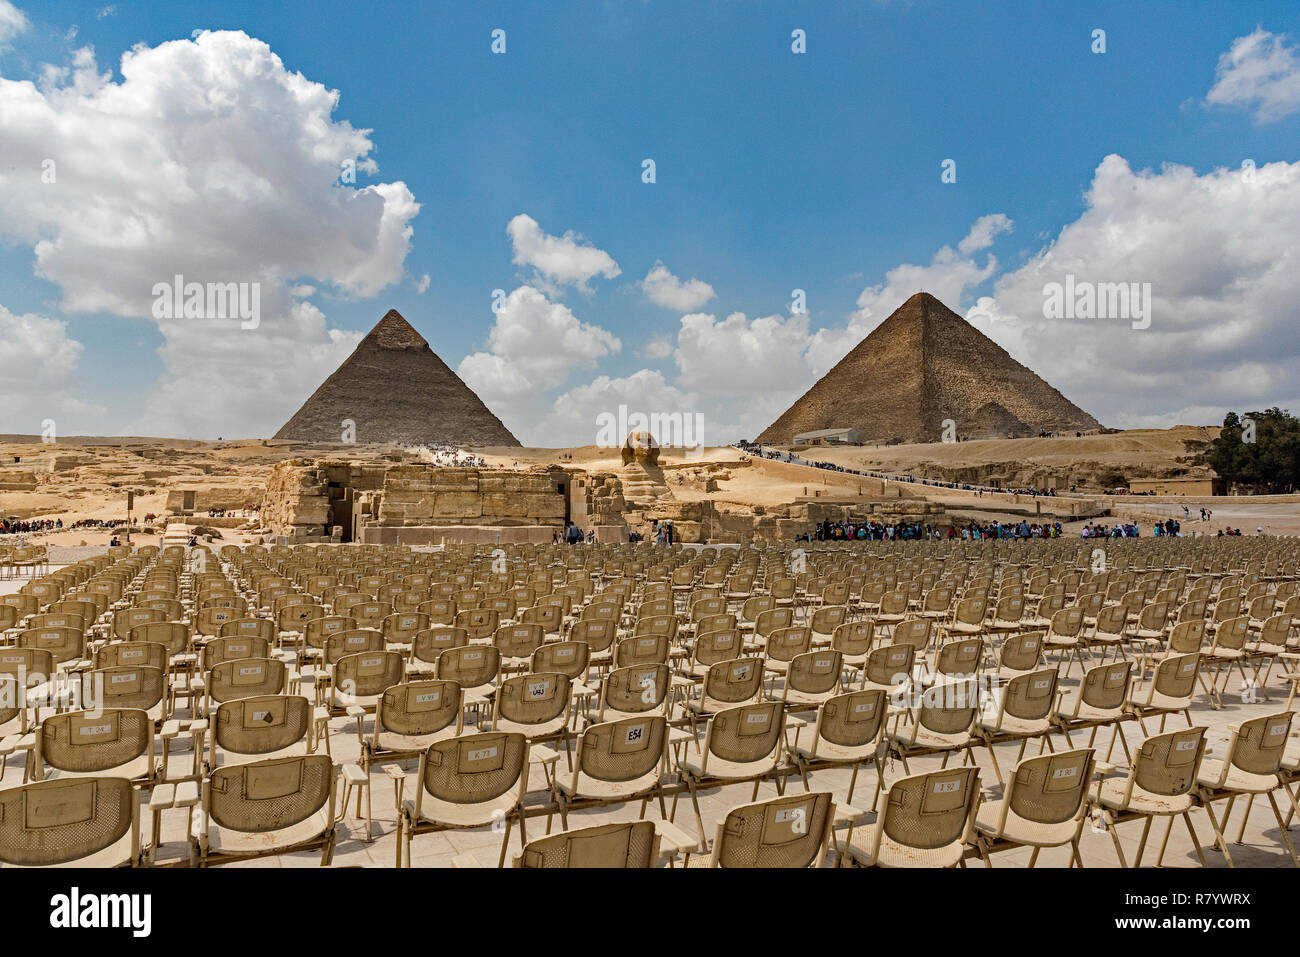 Pyramids view from open-air theatre in Giza Stock Photo